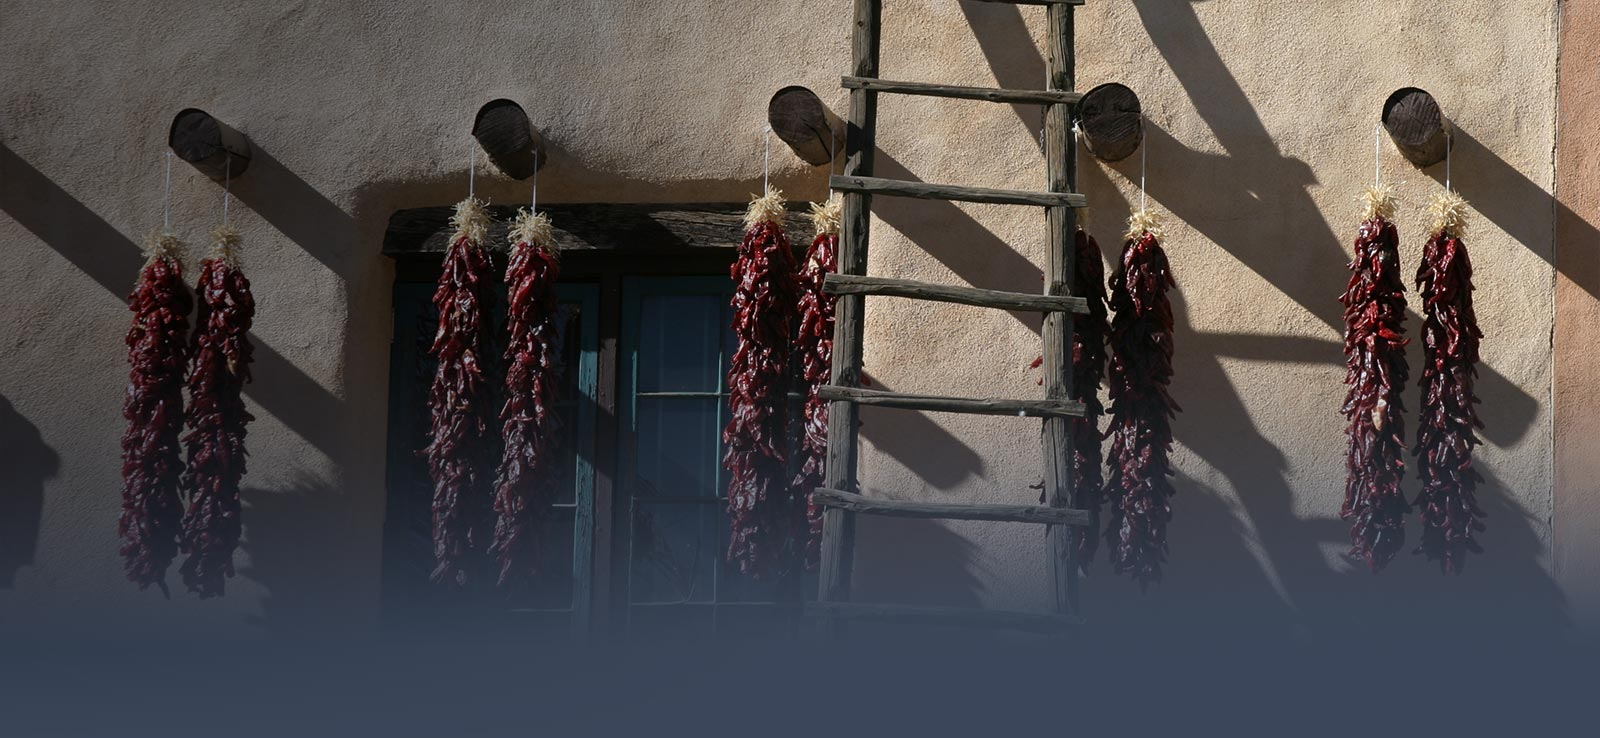 Ristras hanging from adobe house posts